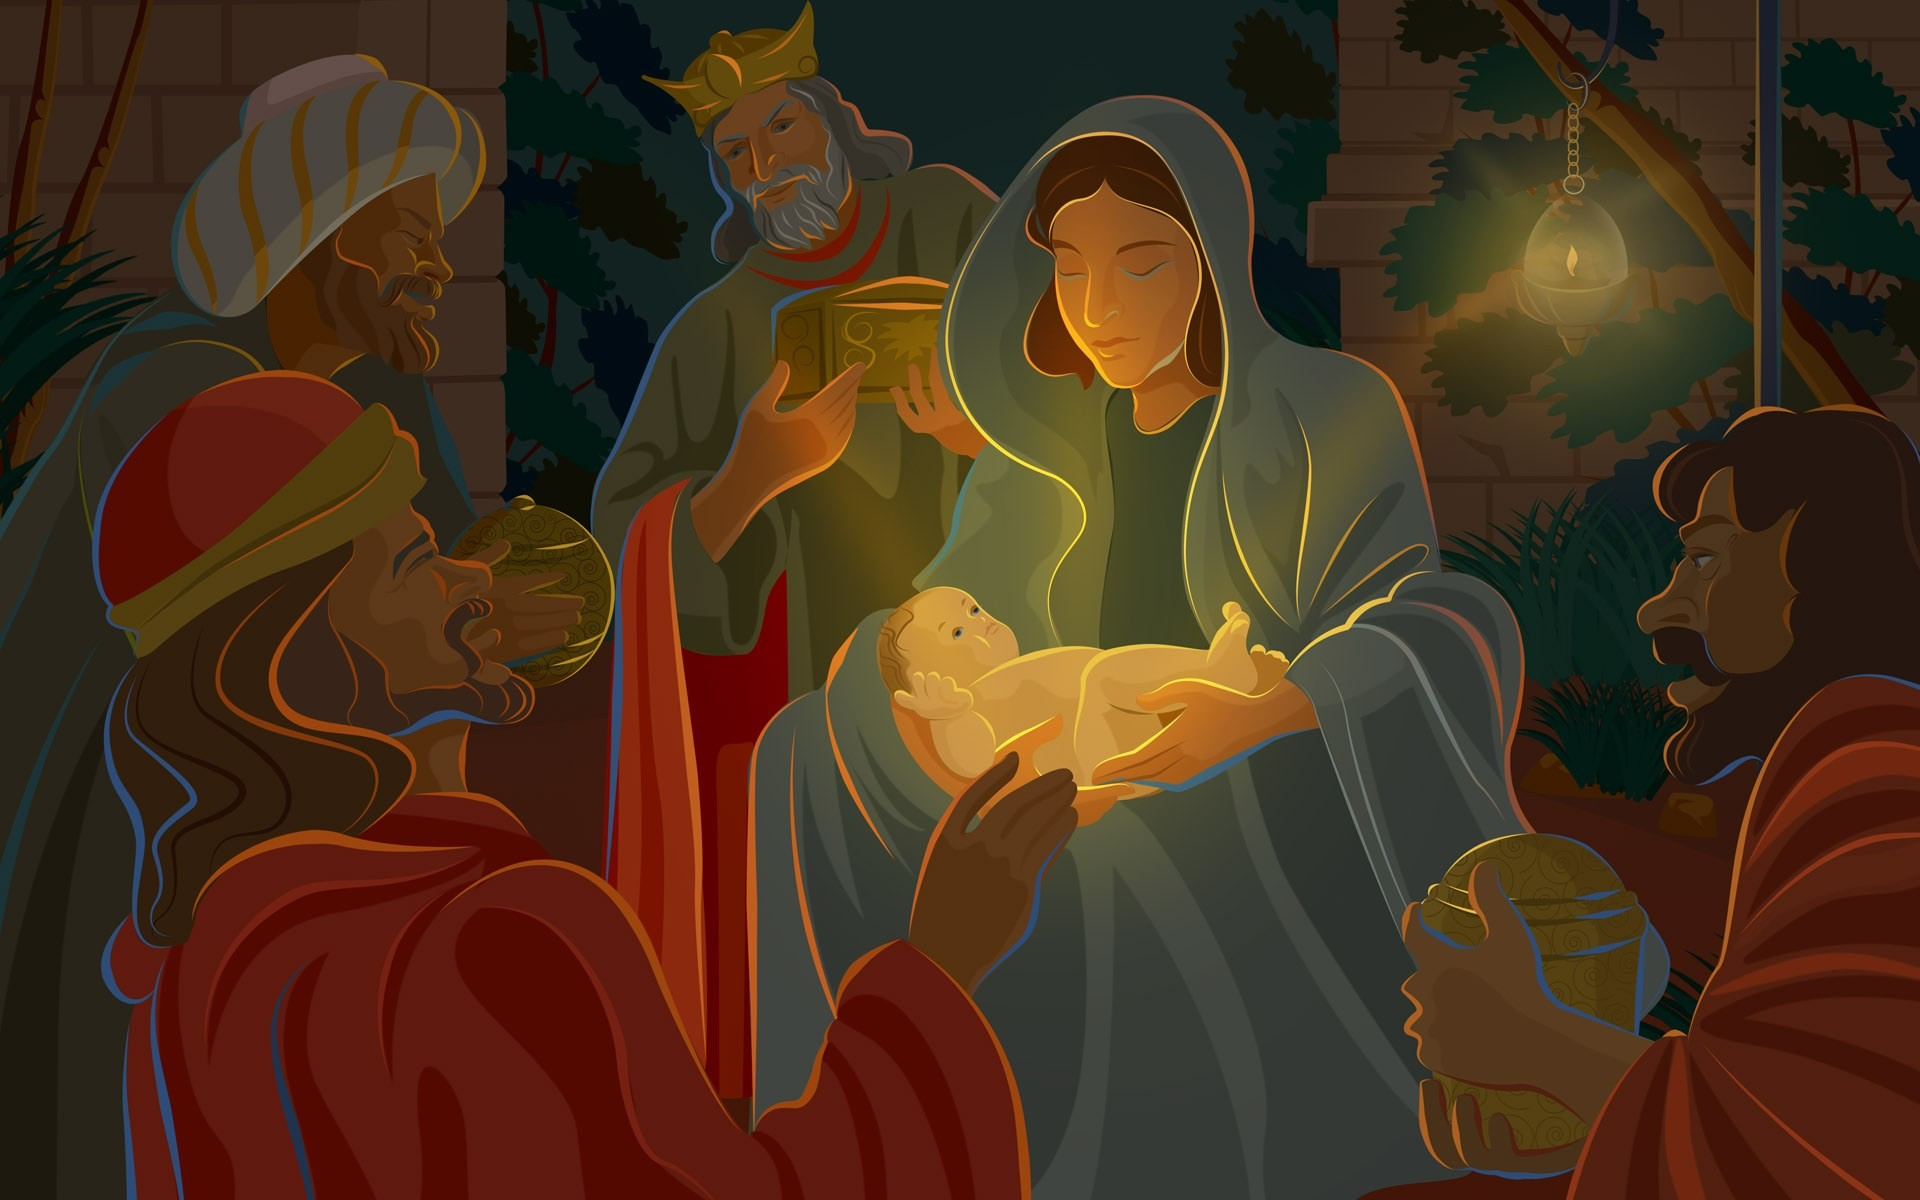 Res: 1920x1200, HD Wallpapers 25 19 *1 0 Illustration - Nativity scene - The Birth of Jesus